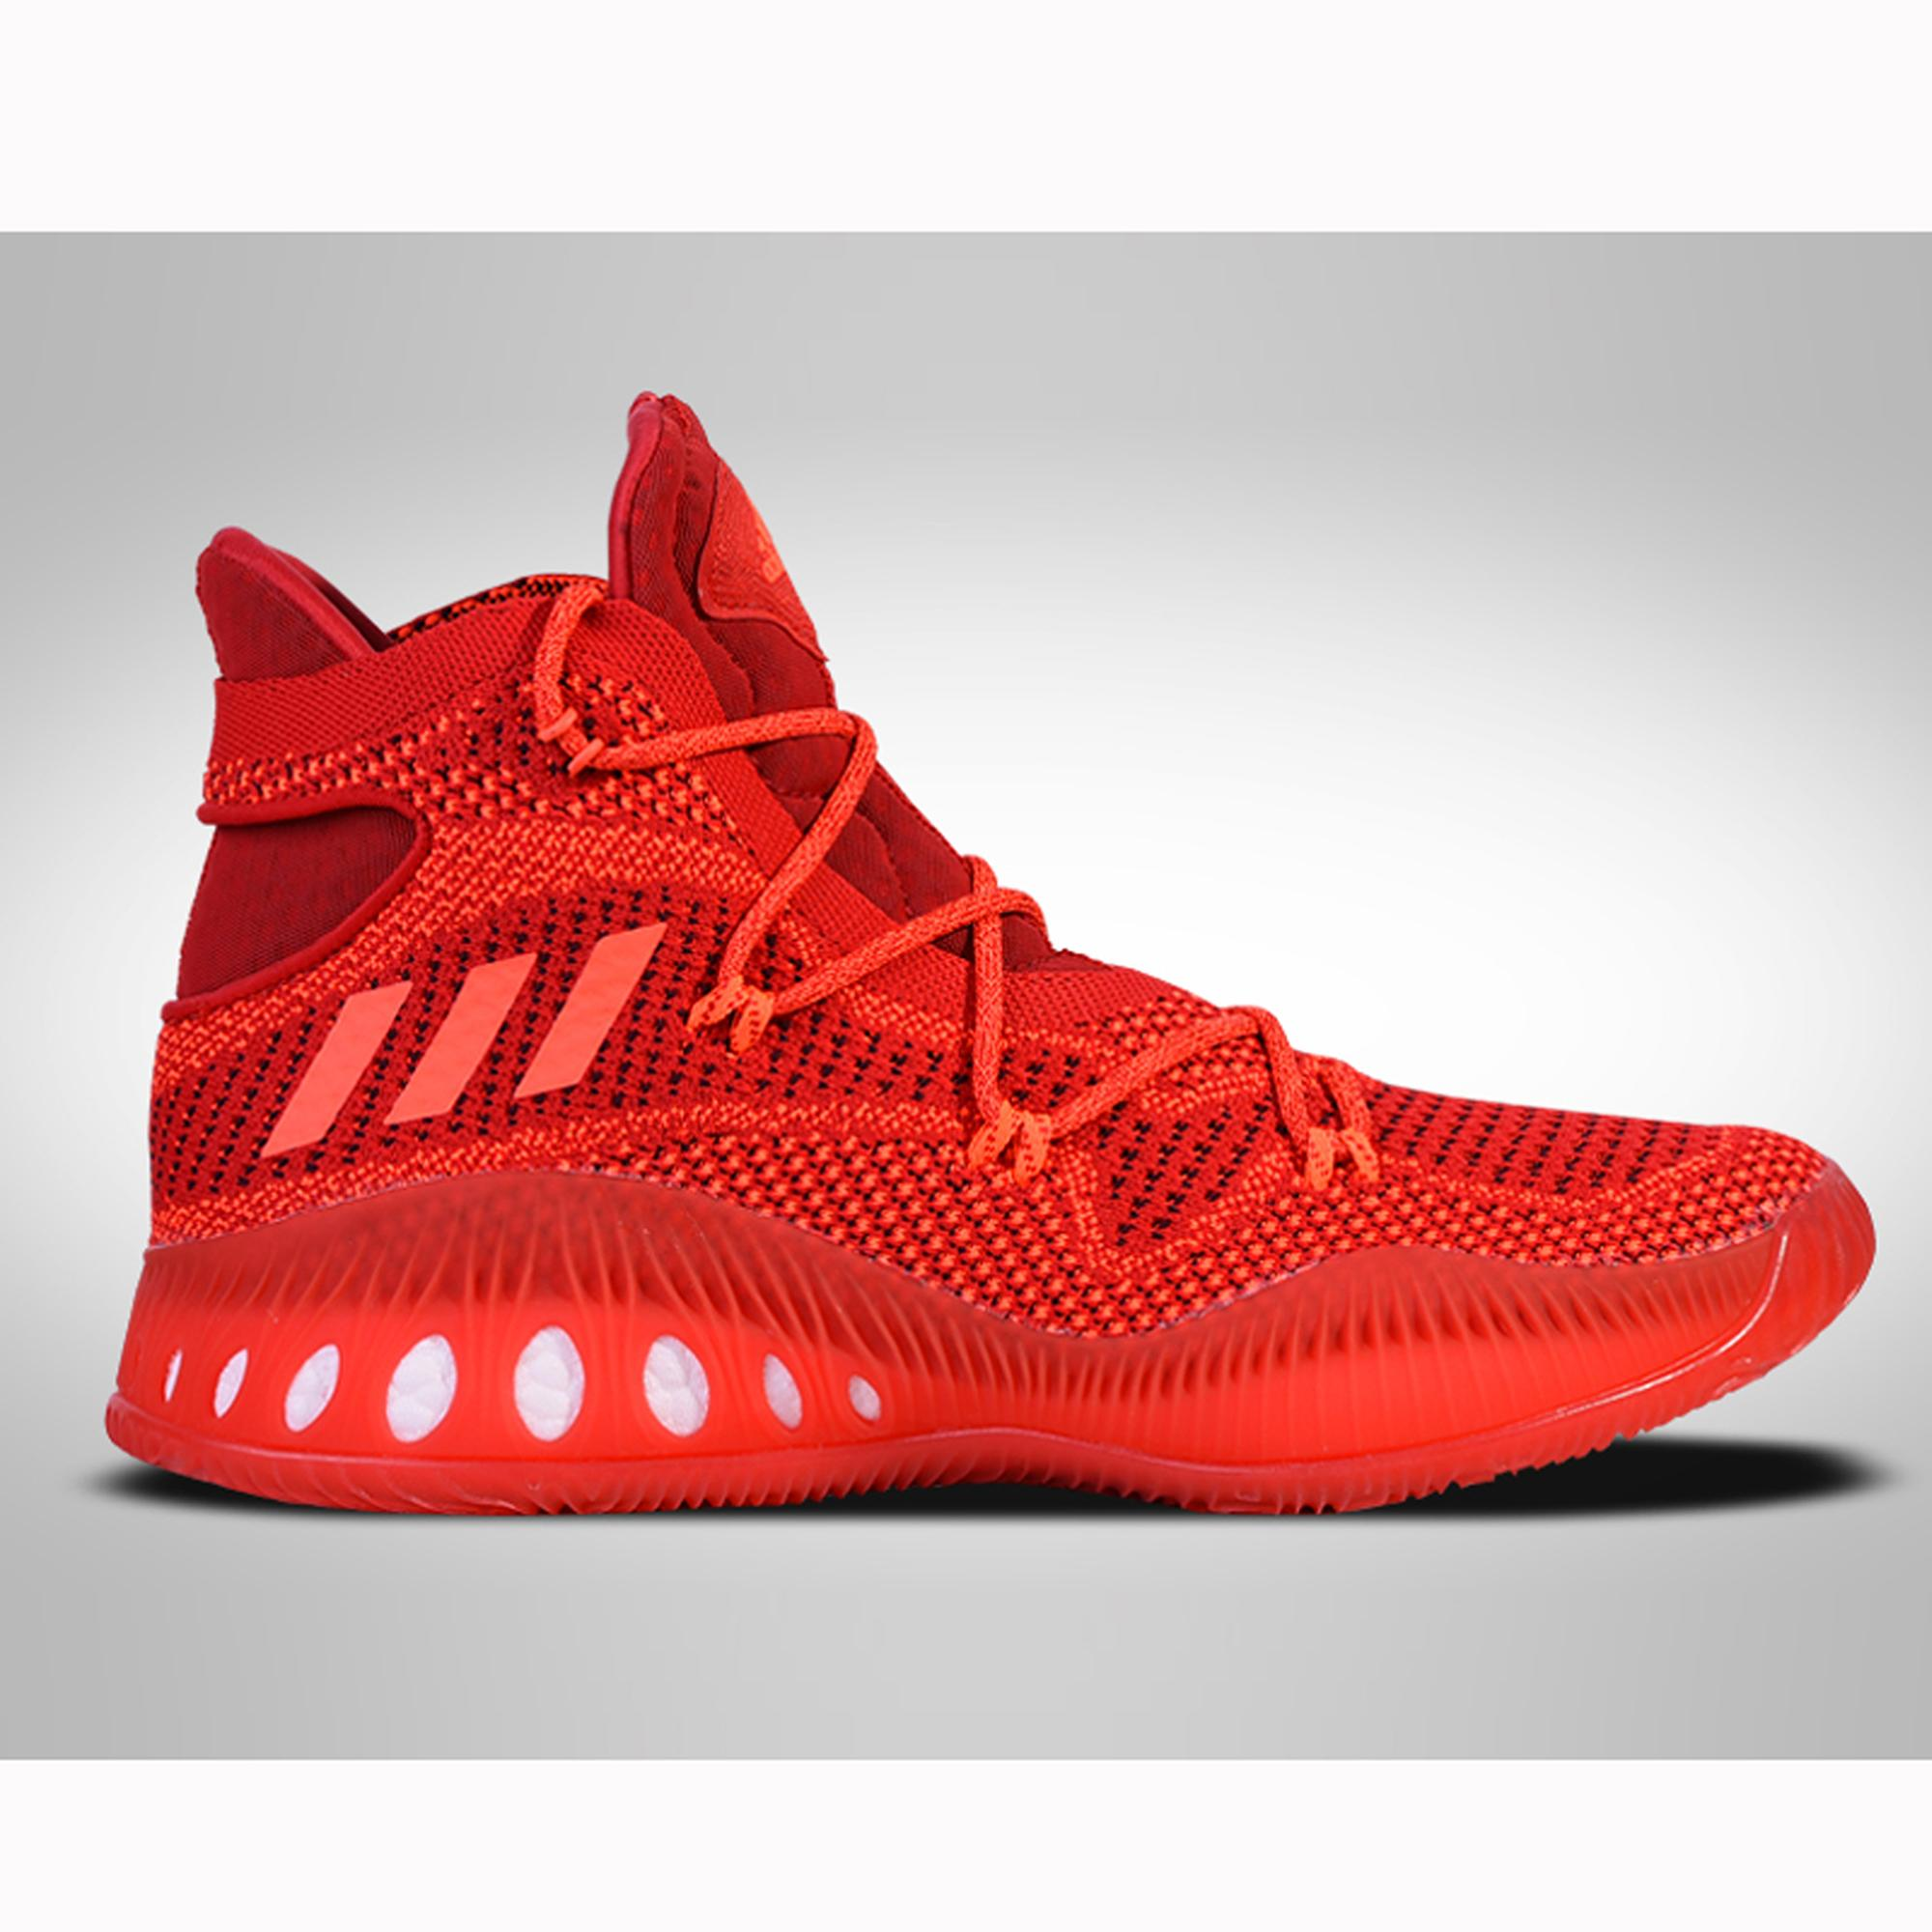 30bd600a39c Sports Shoes In Bangladesh At Best Price Online - Daraz.com.bd